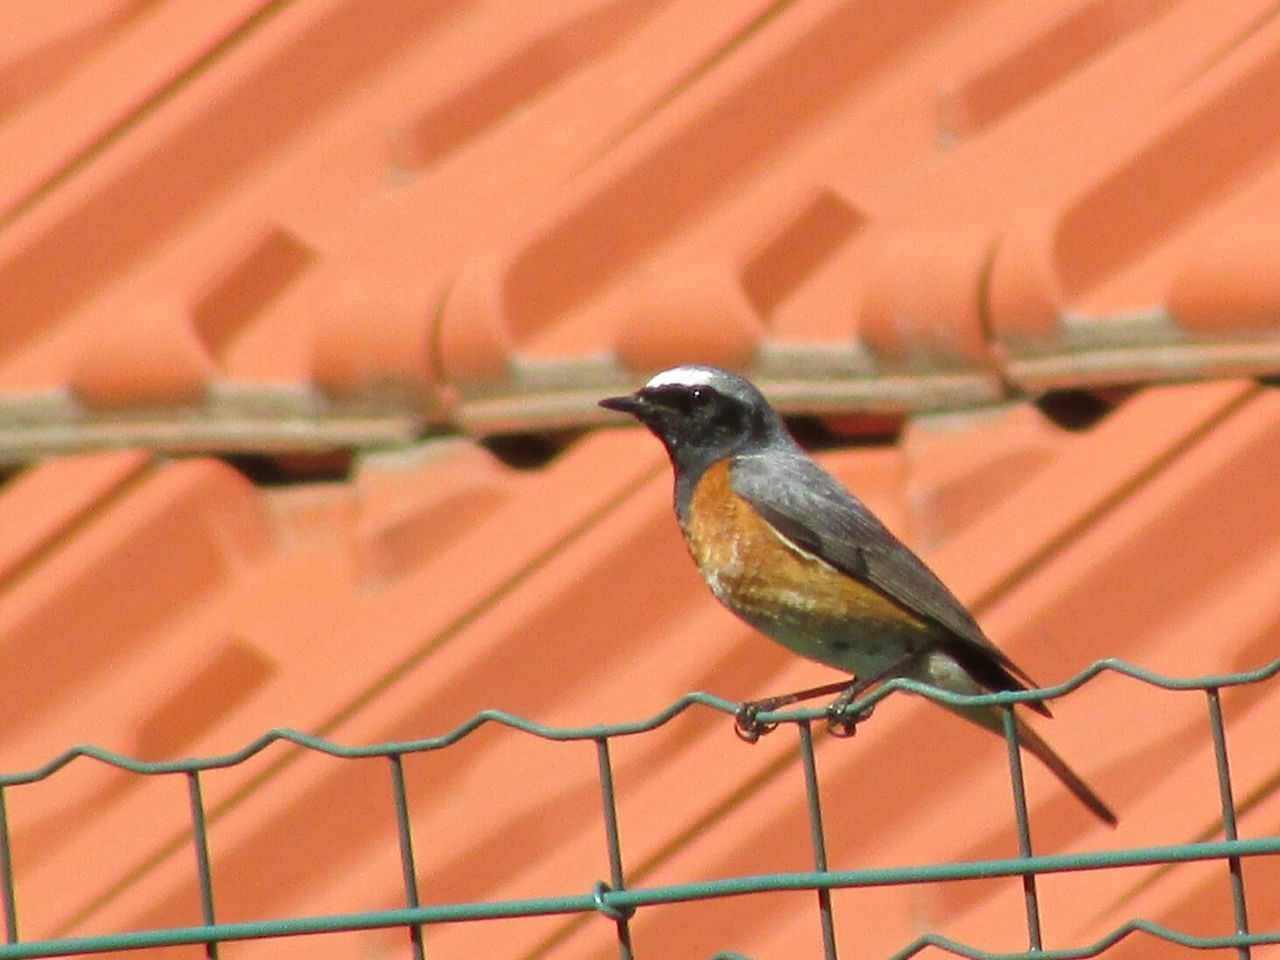 Close-up side view of a bird on fence